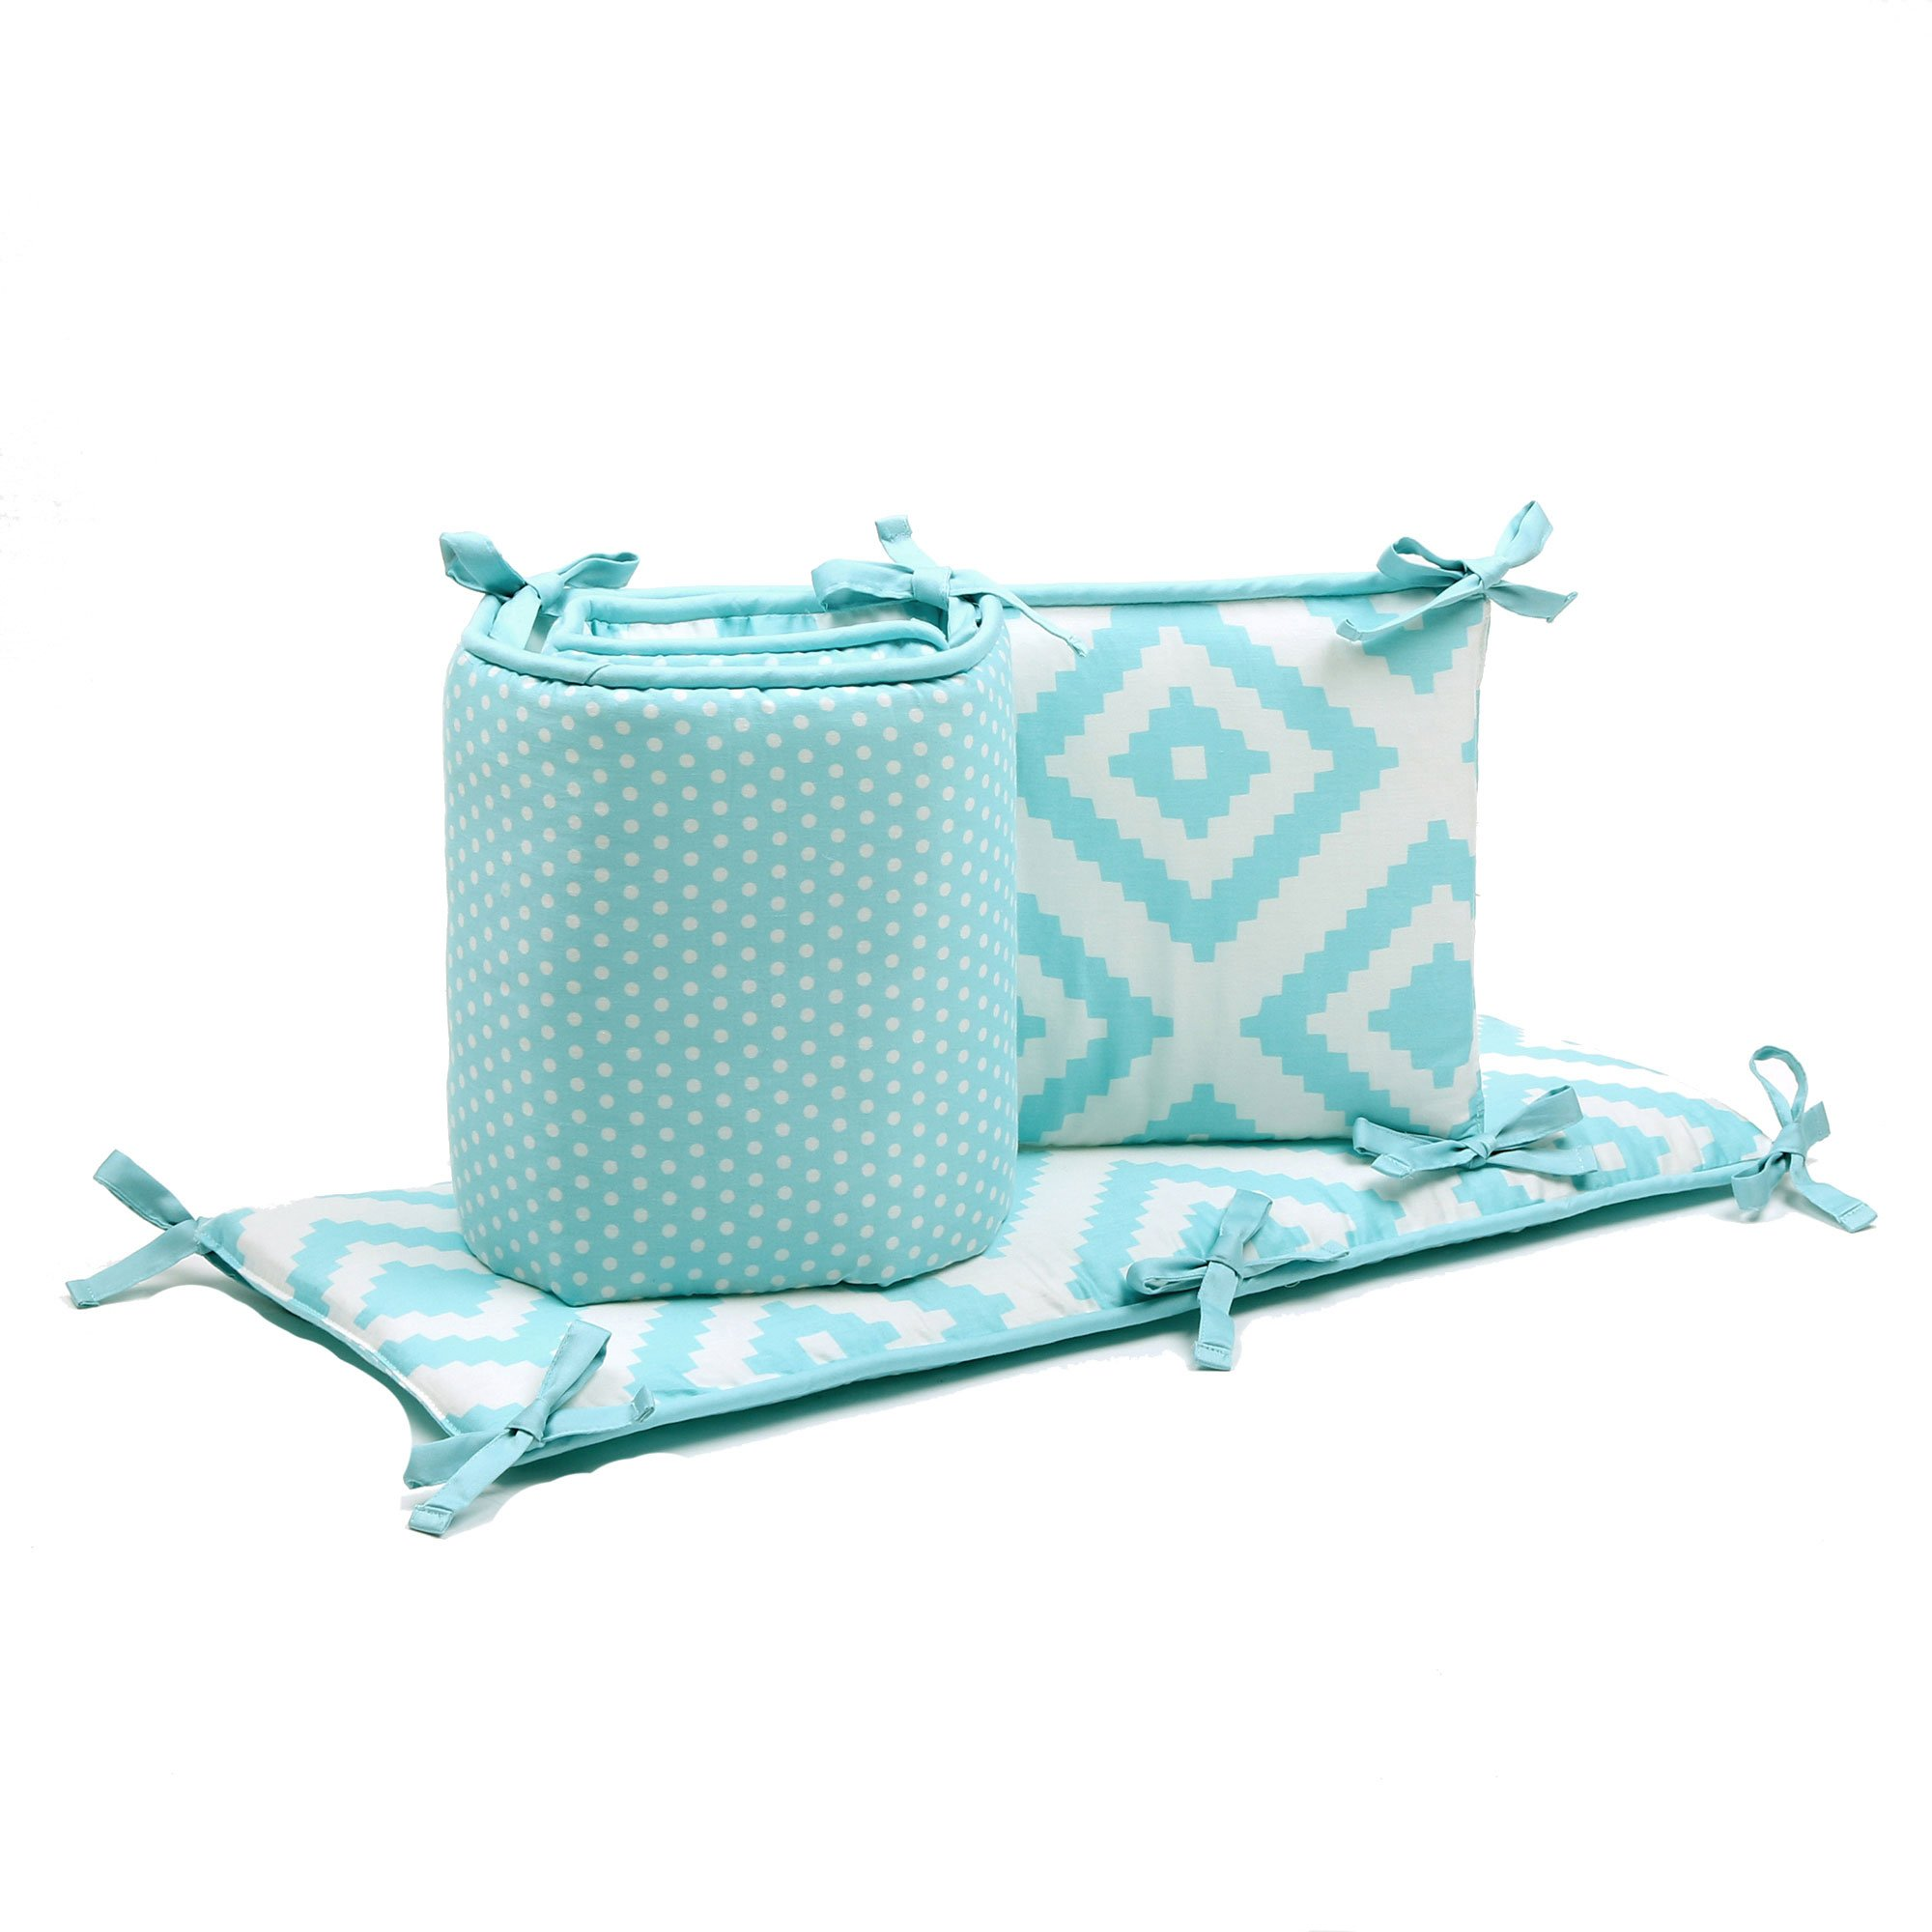 Teal Polka Dot and Tile Reversible Baby Crib Bumper by The Peanut Shell